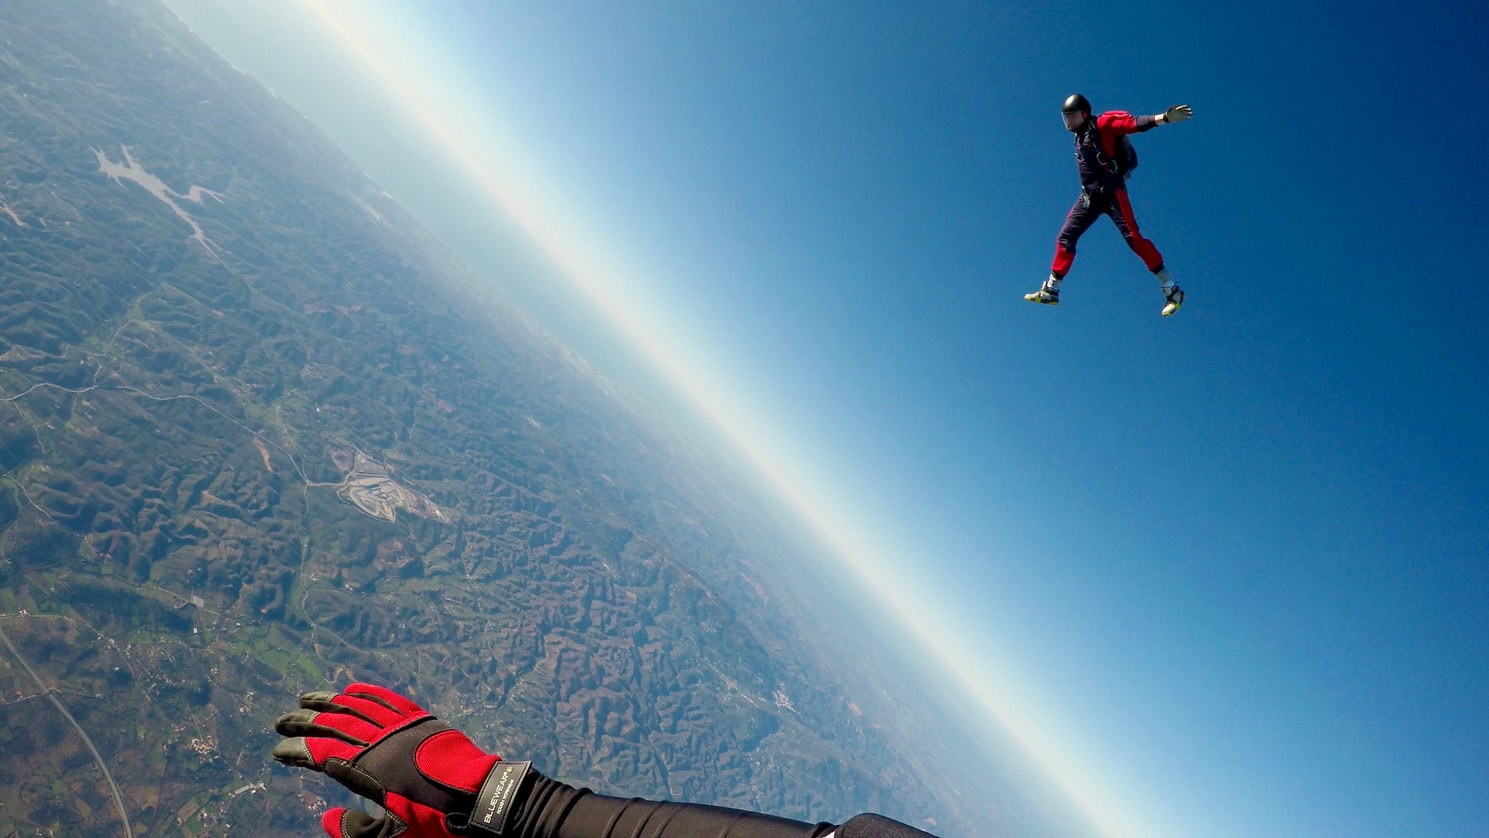 A guy skydiving